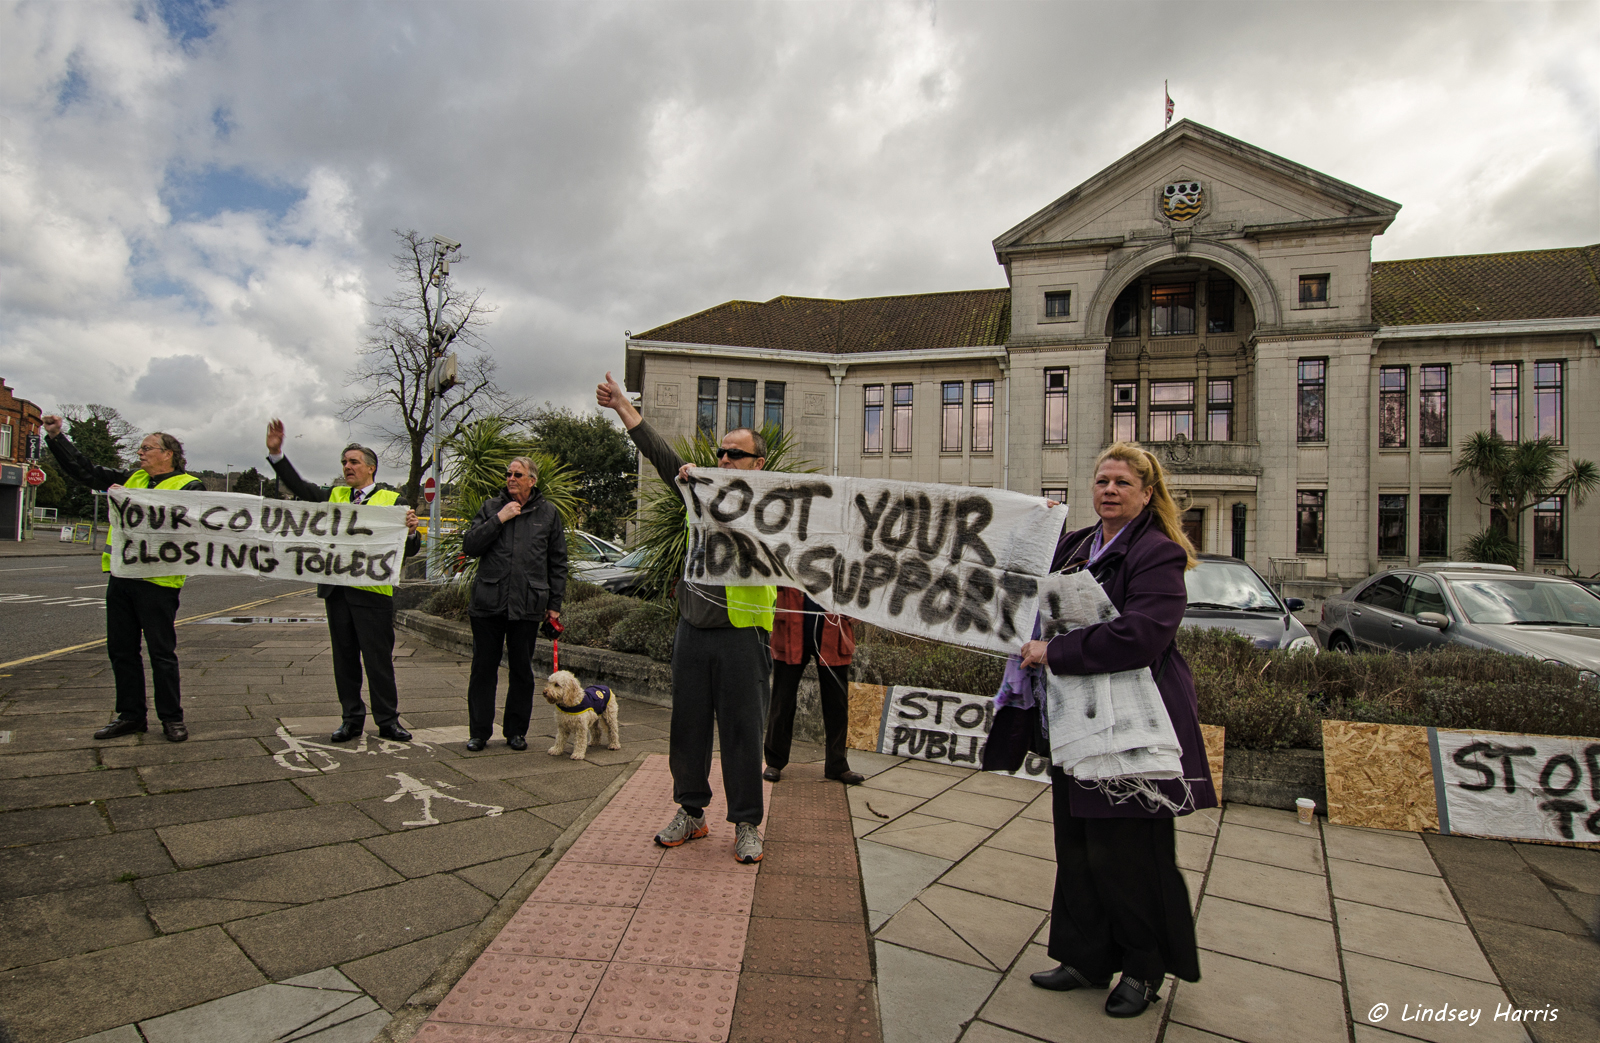 Protest against closure of public lavatories in Poole